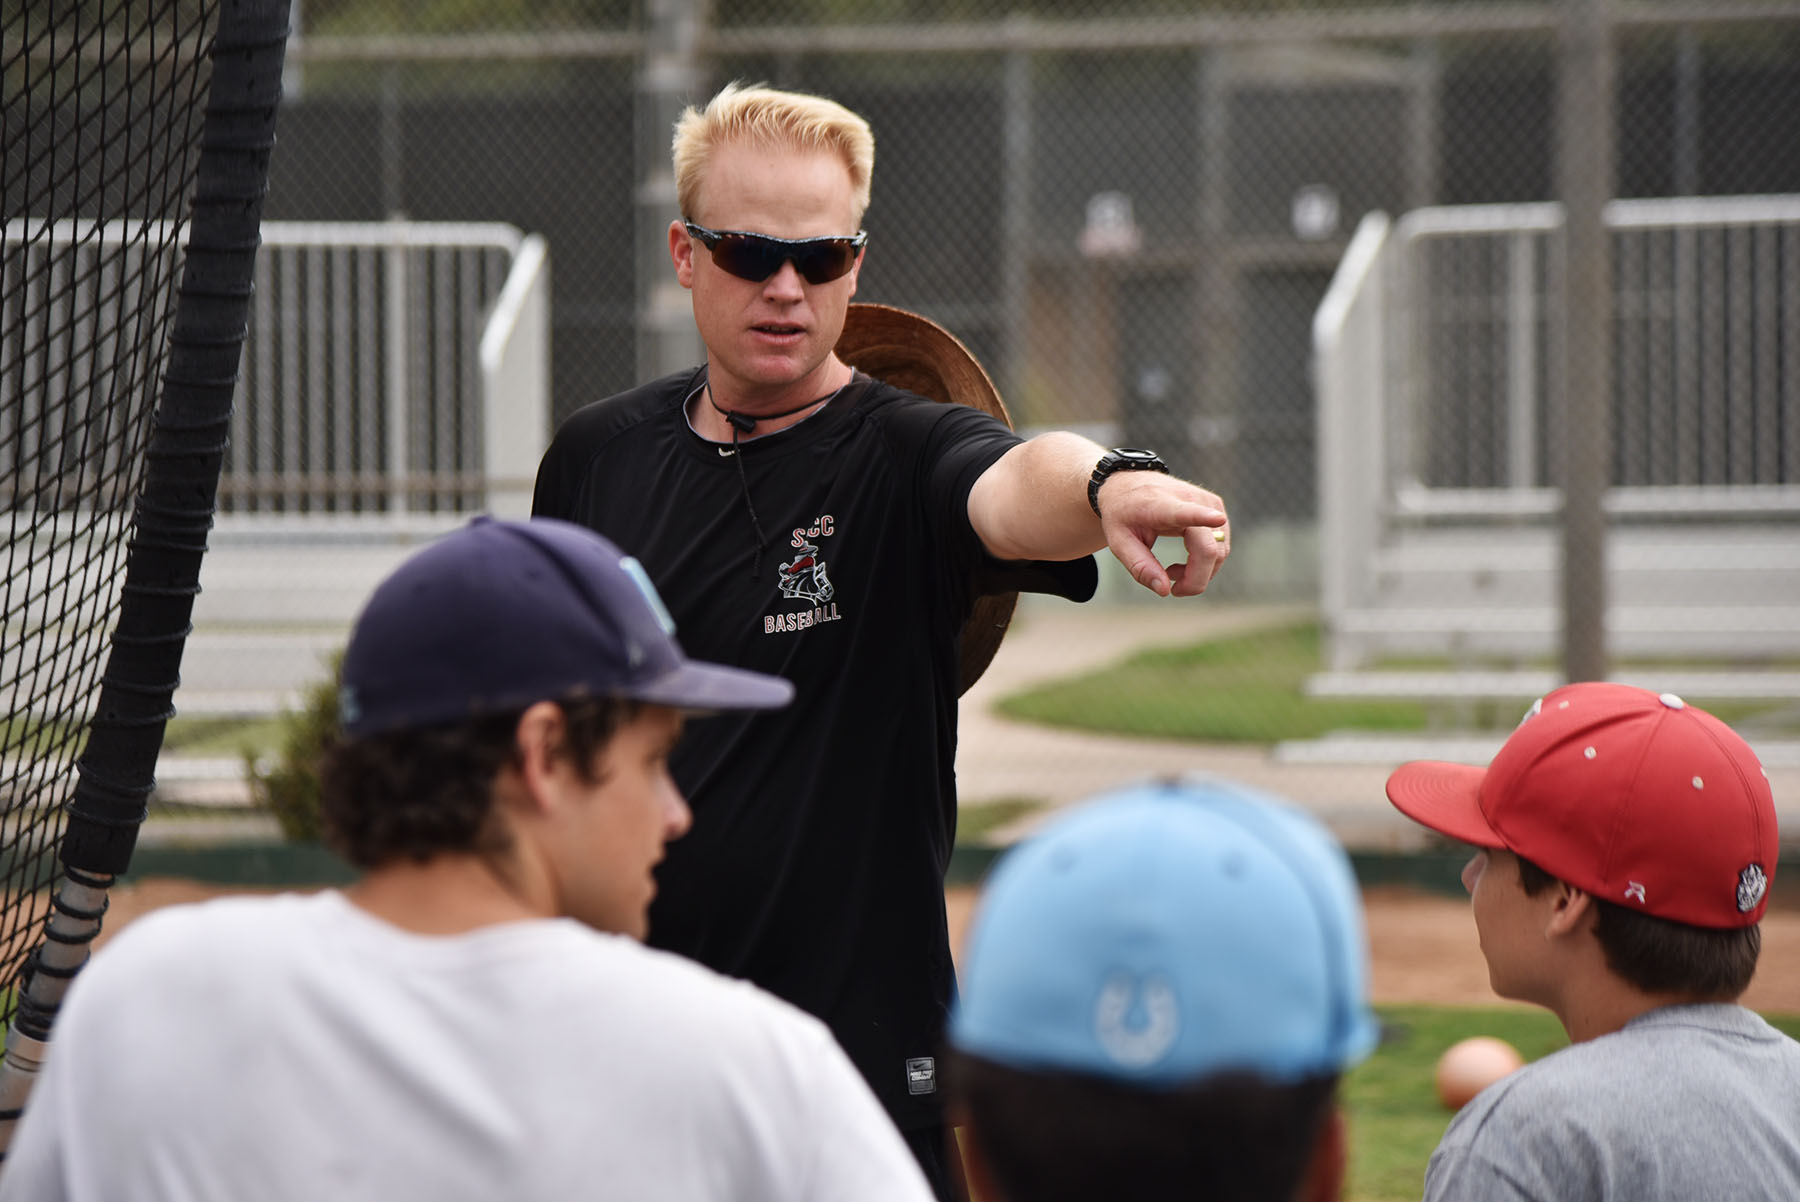 Baseball head coach Jeff Walker explains the strategies behind hitting during off-season practice on Wednesday, Sept. 7, at Pershing Park. Walker was recently hired as a full time faculty member.